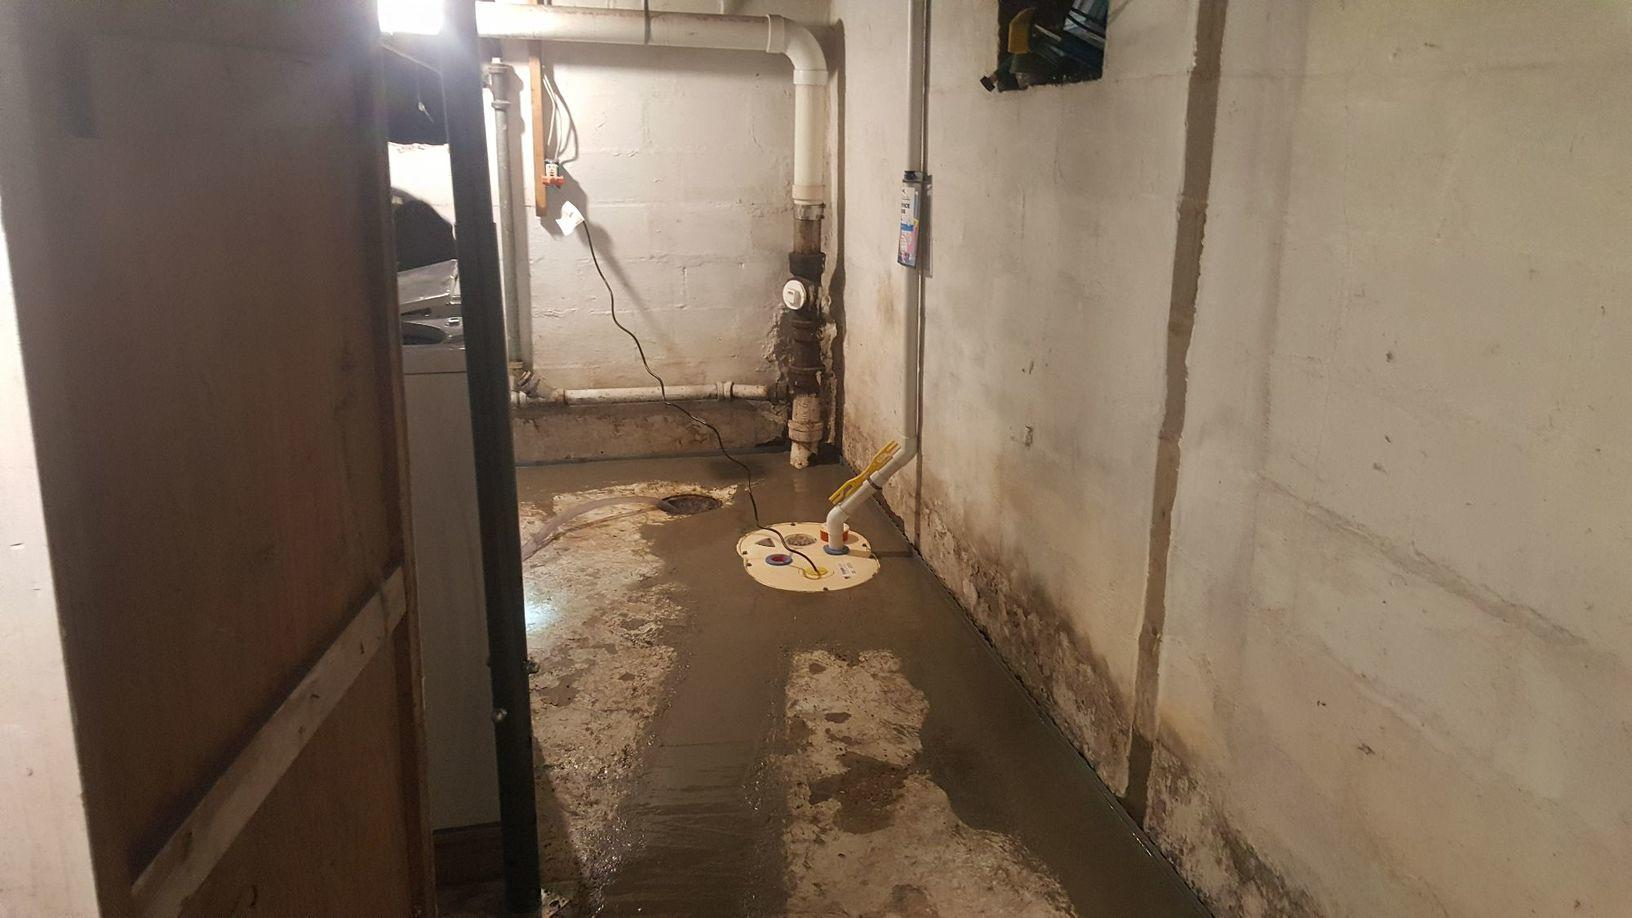 Basement Waterproofed in Tomah, WI - After Photo